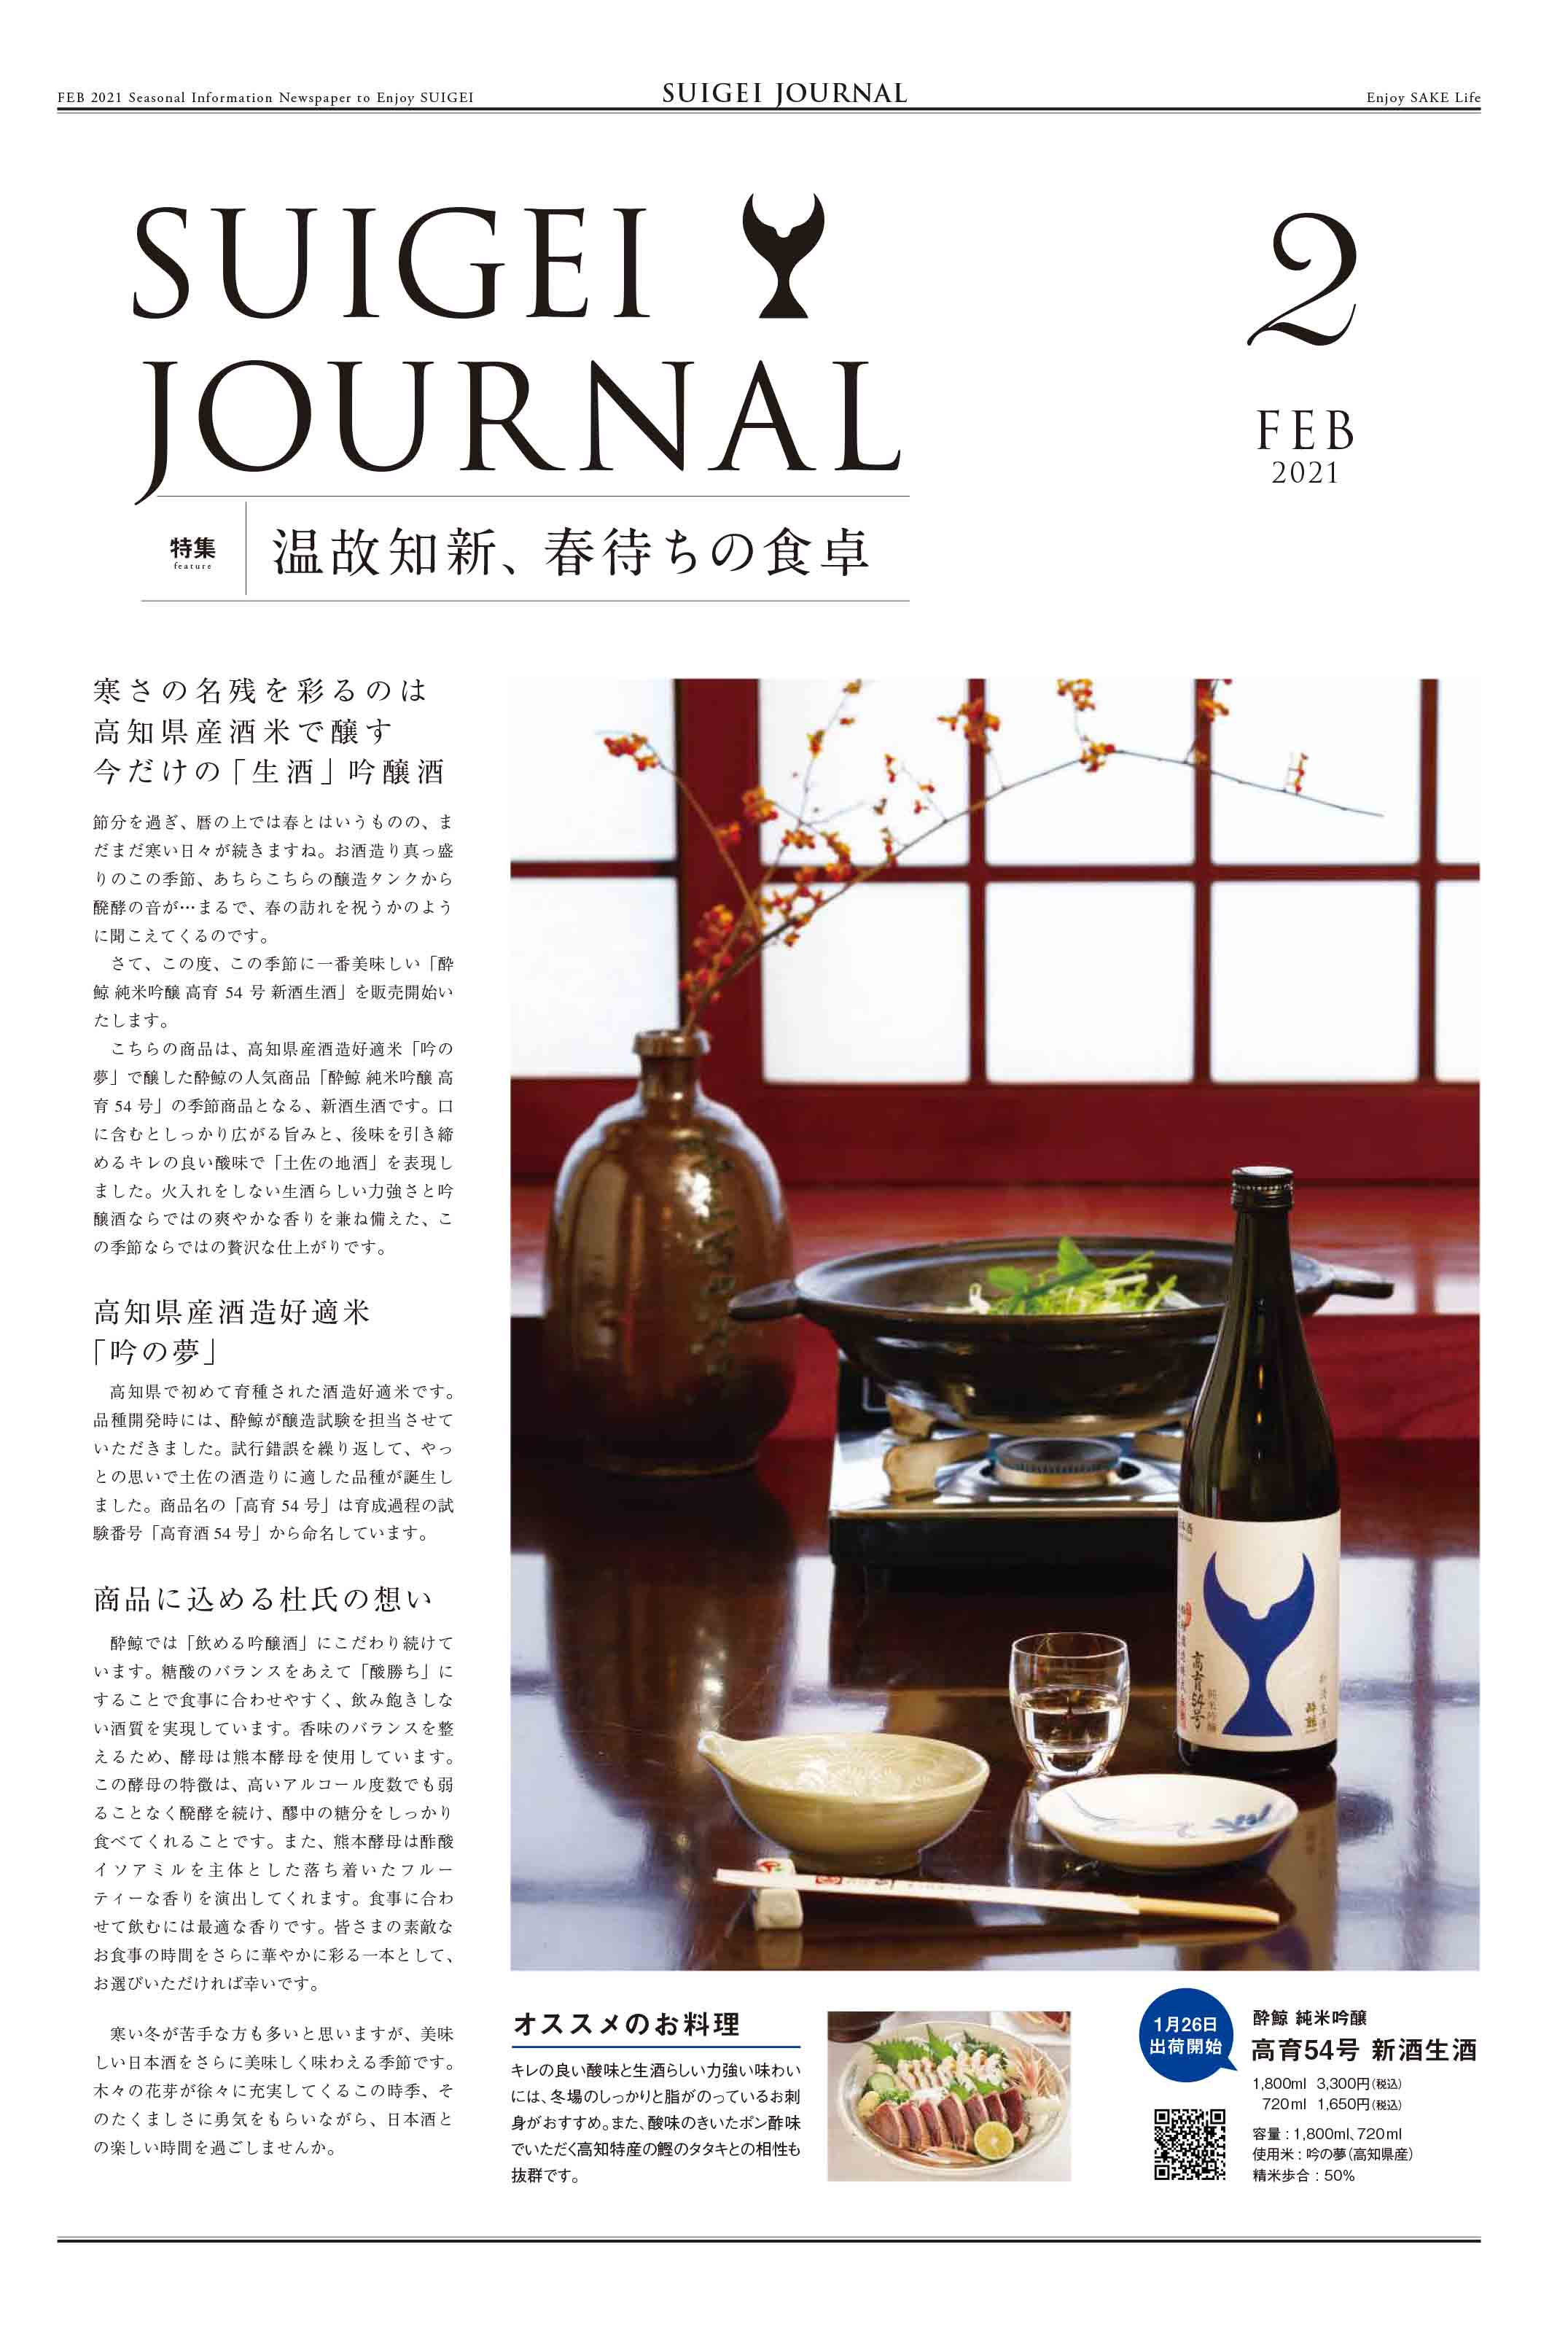 SUIGEI JOURNAL 2021年 2月号